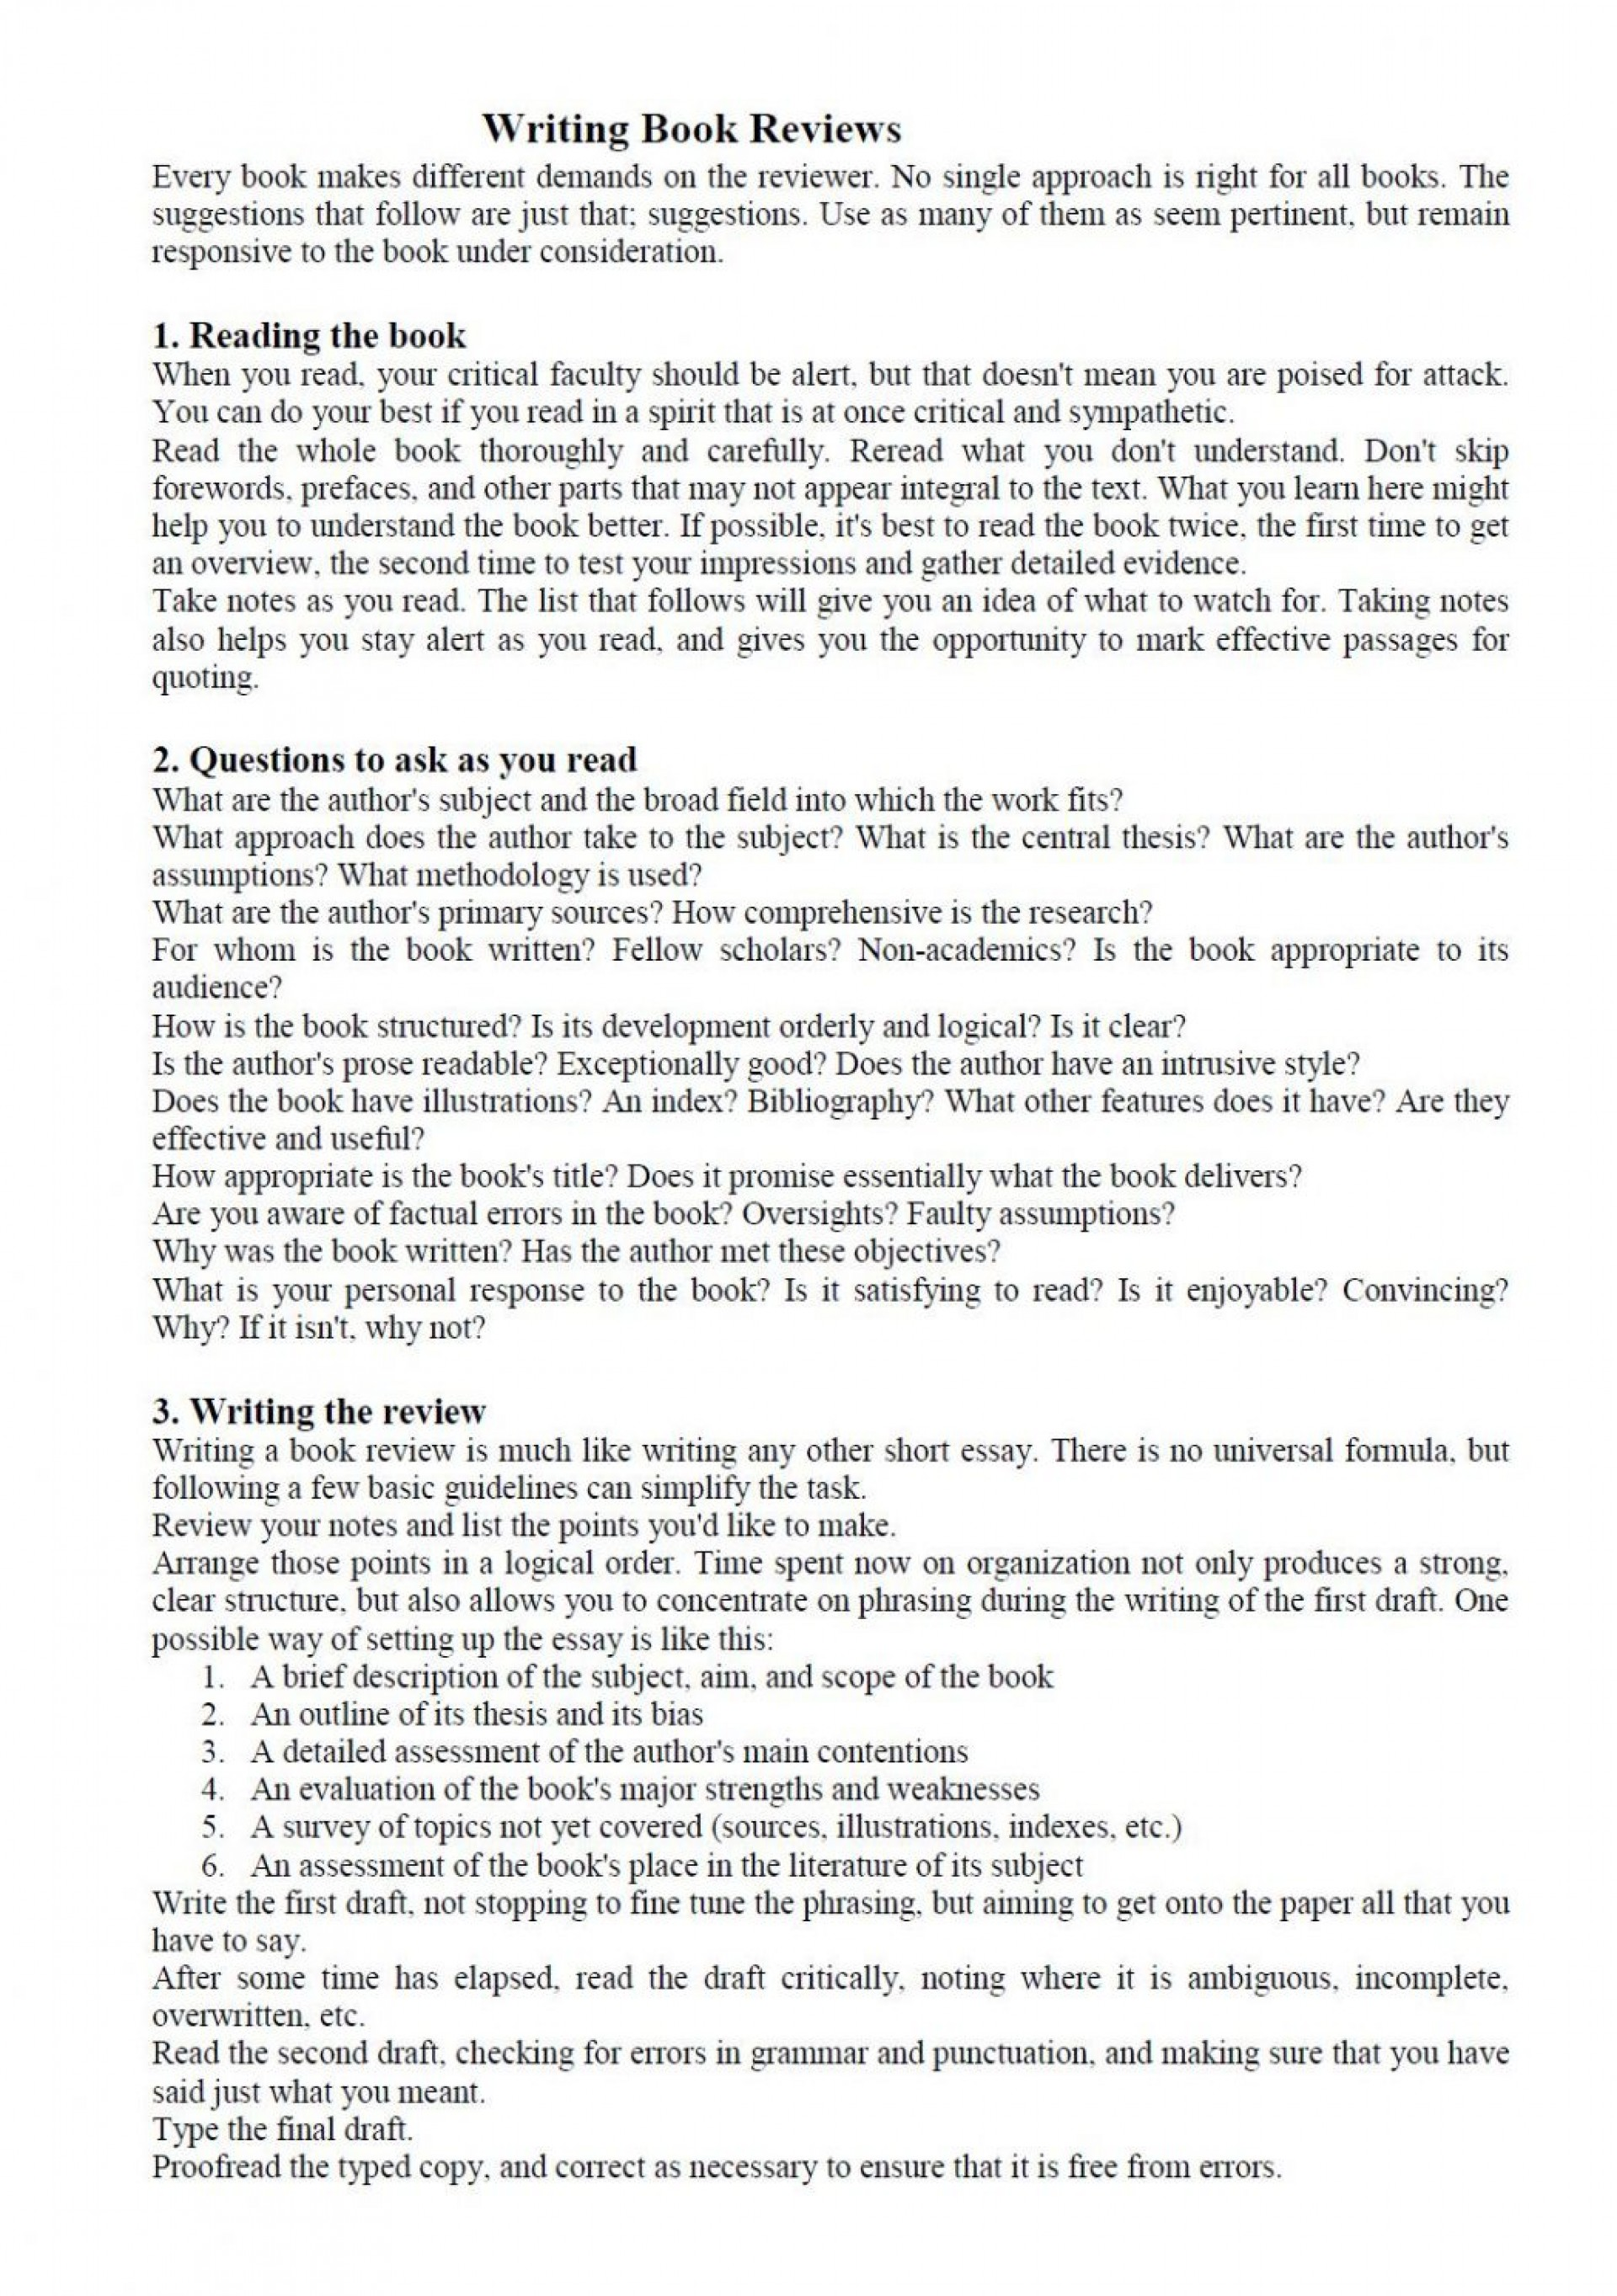 014 Best College App Essays Example Of Essay For Common Application Prompts How To Write Book R Examples Admission Topics Format Magnificent 2018 Ivy League New York Times 1920